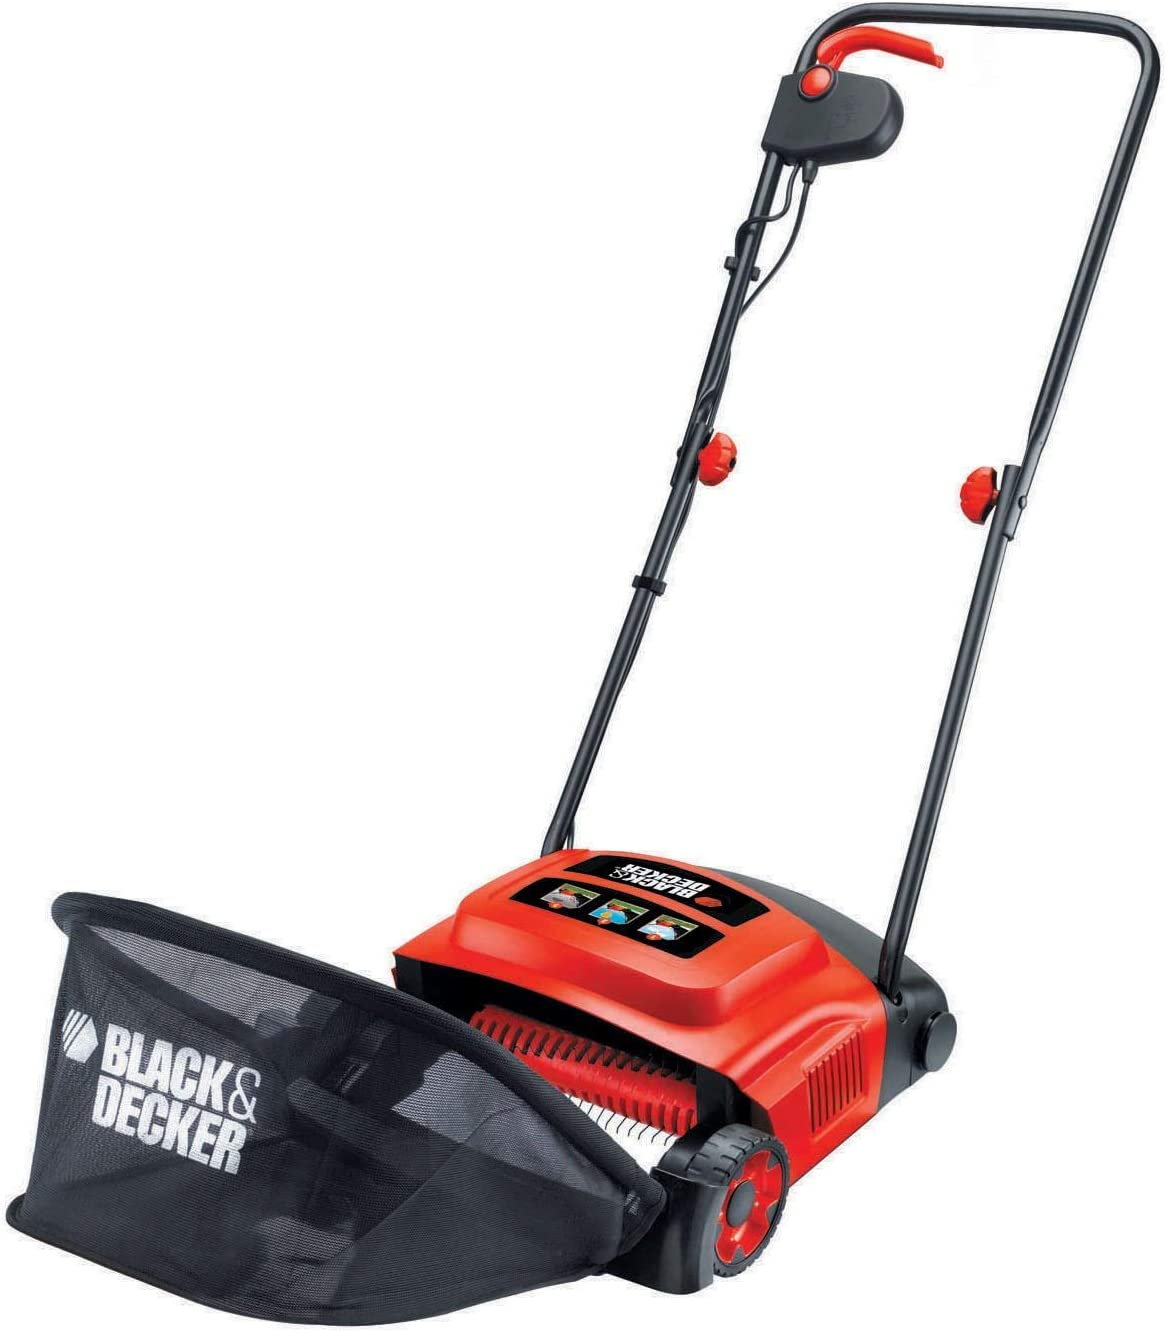 Black & Decker GD300 Lawnraker